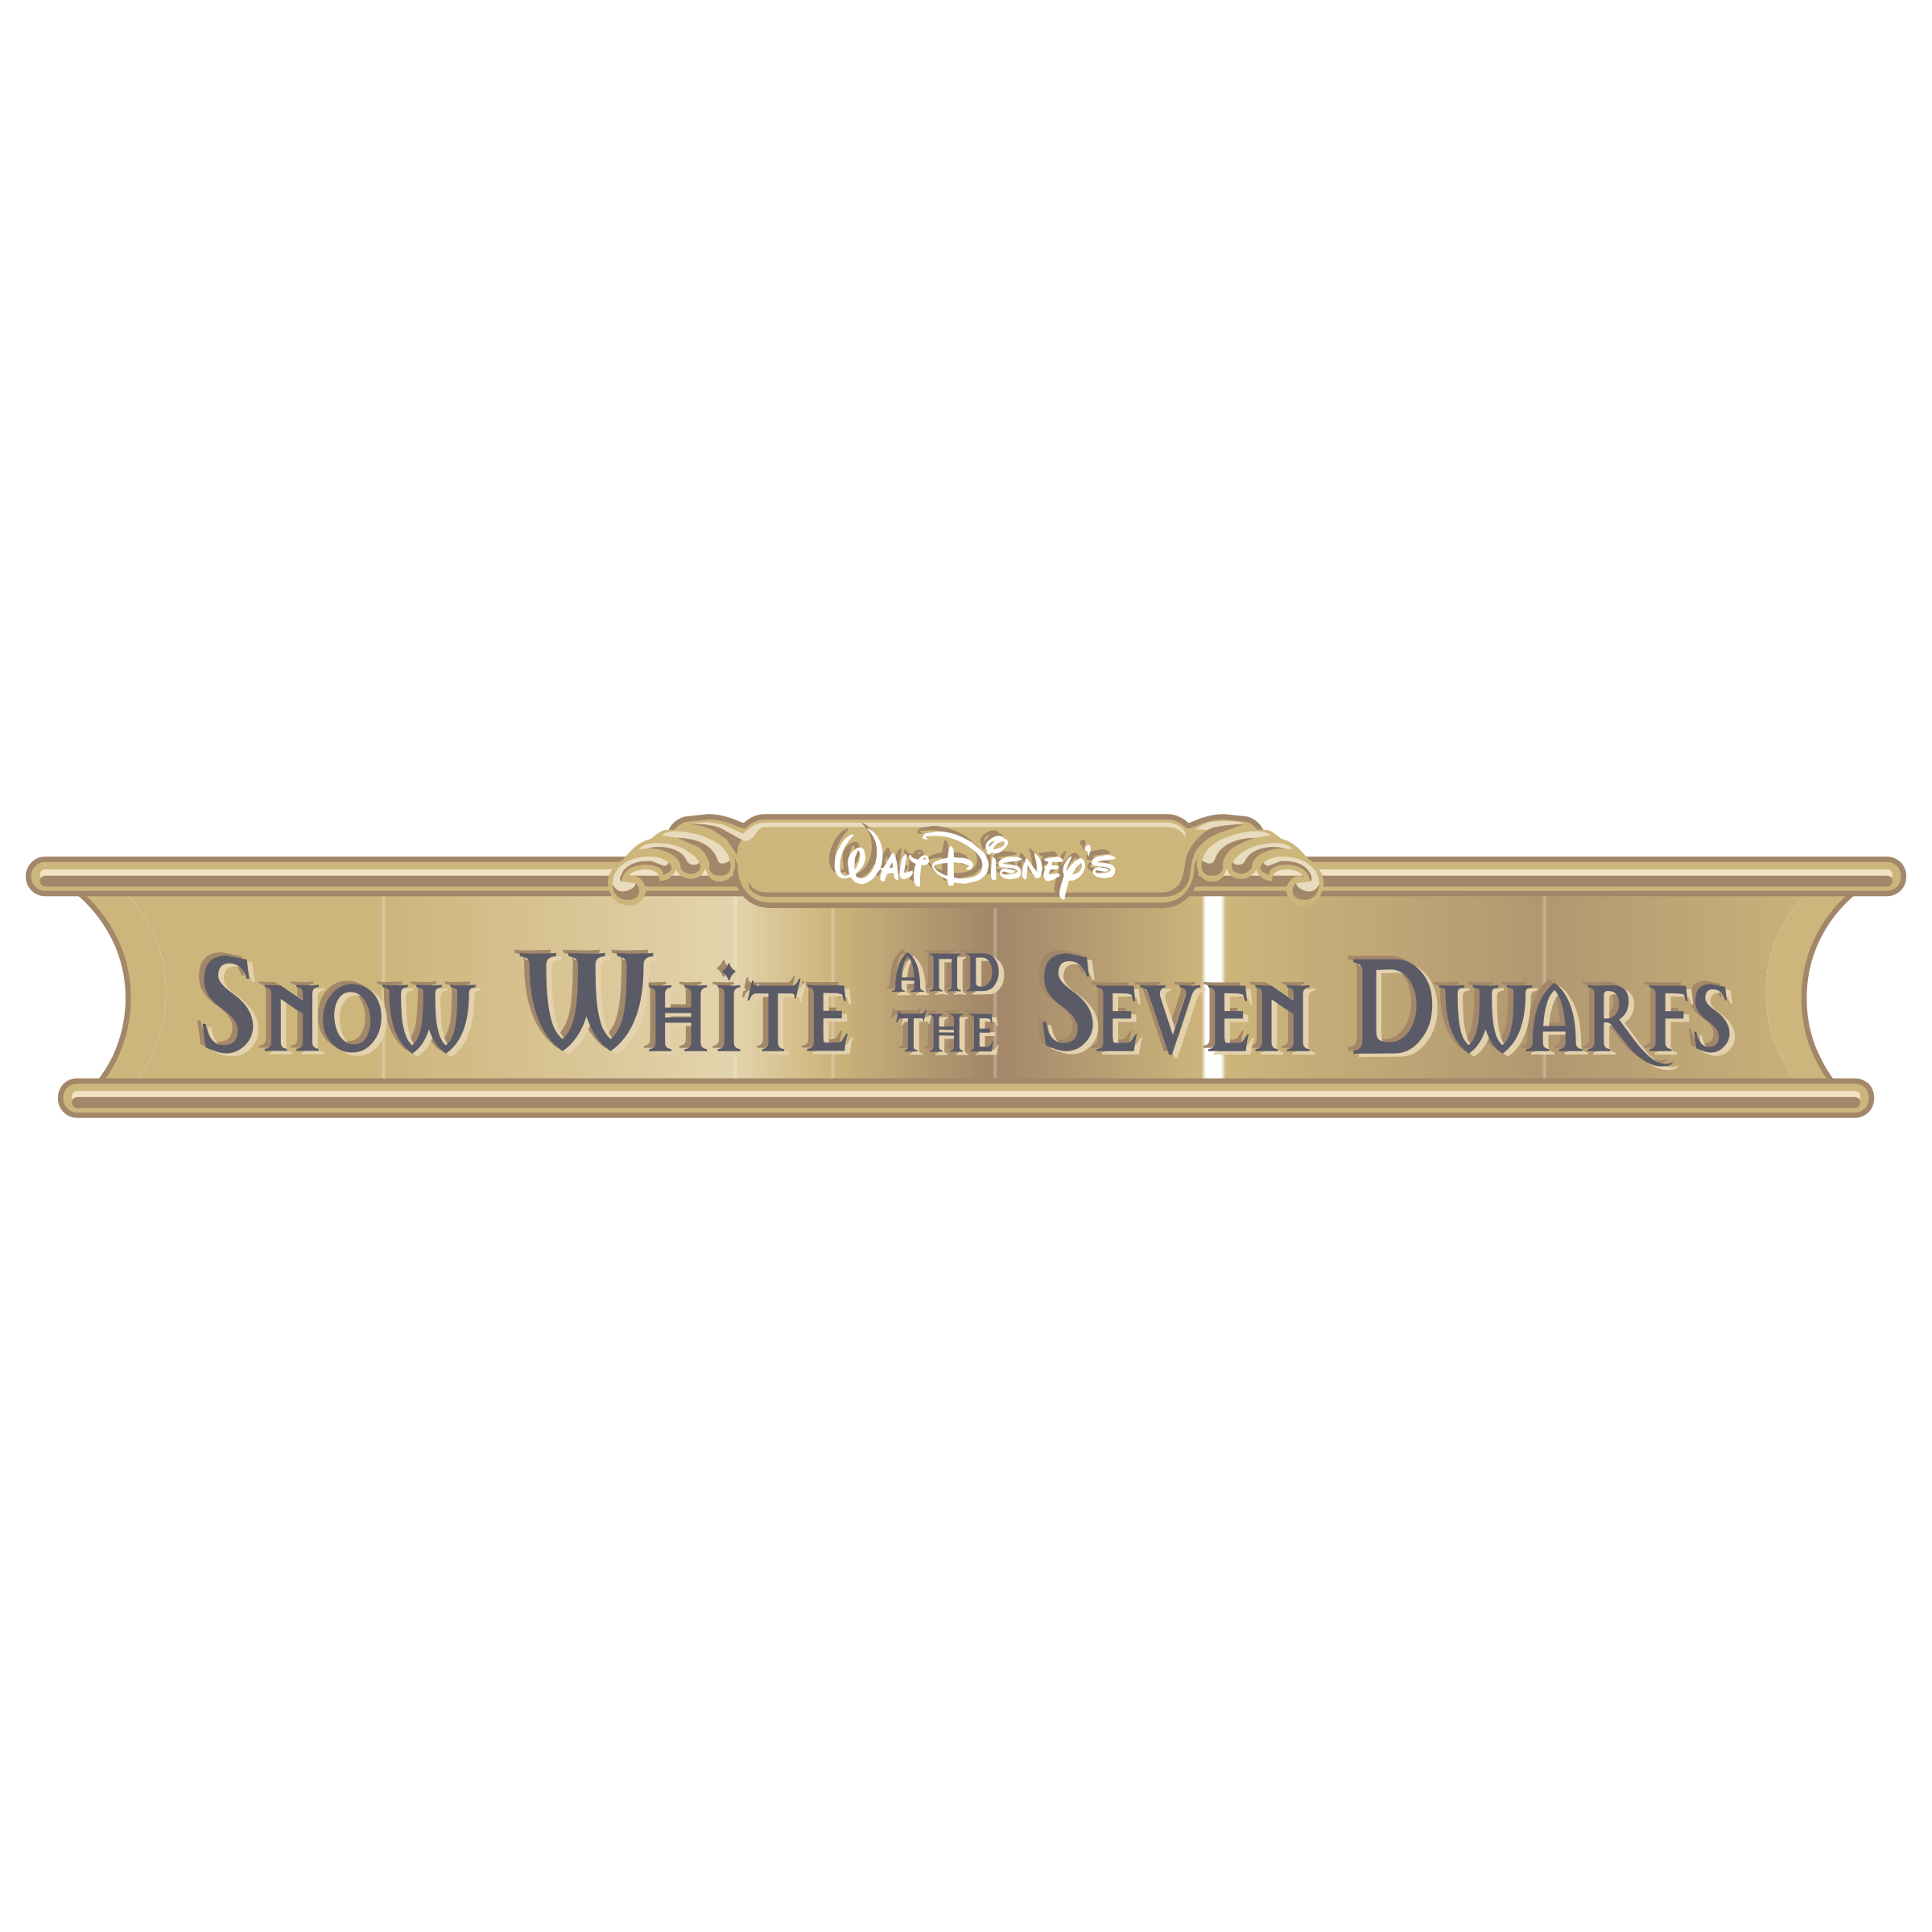 Disney's Snow White and the Seven Dwarfs Logo PNG Transparent & SVG